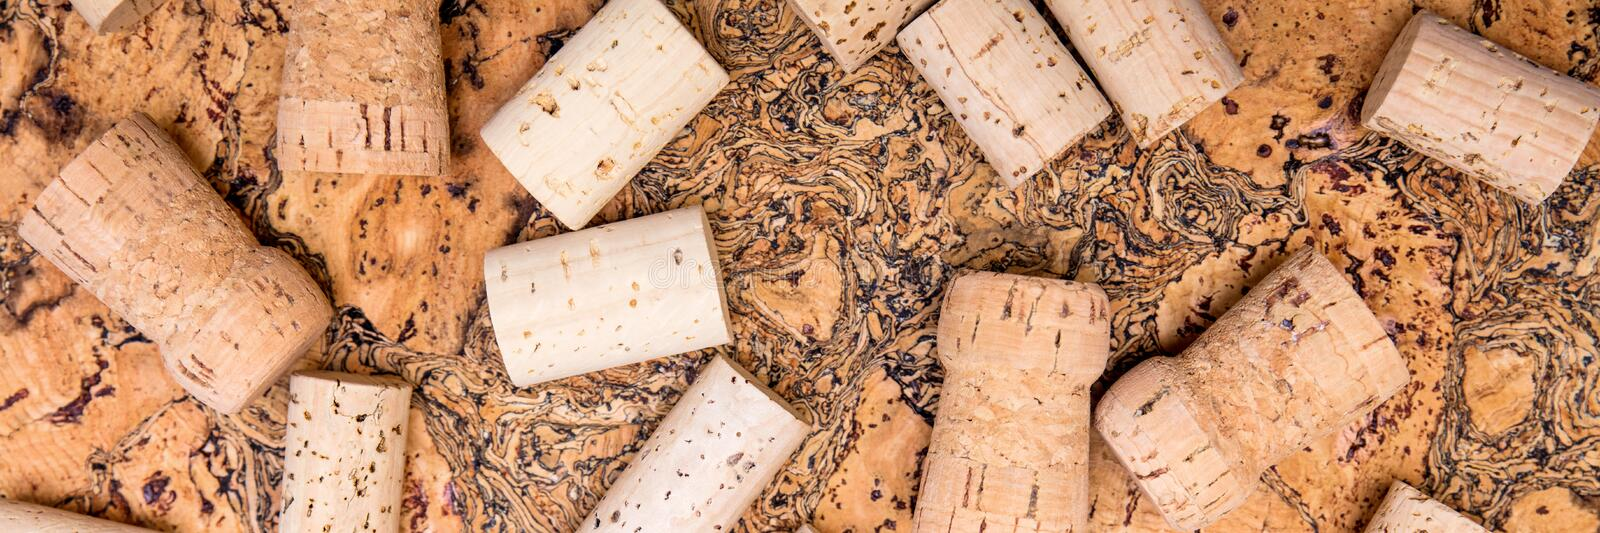 Header, wine and champagne cork spreading on untreated cork royalty free stock photo